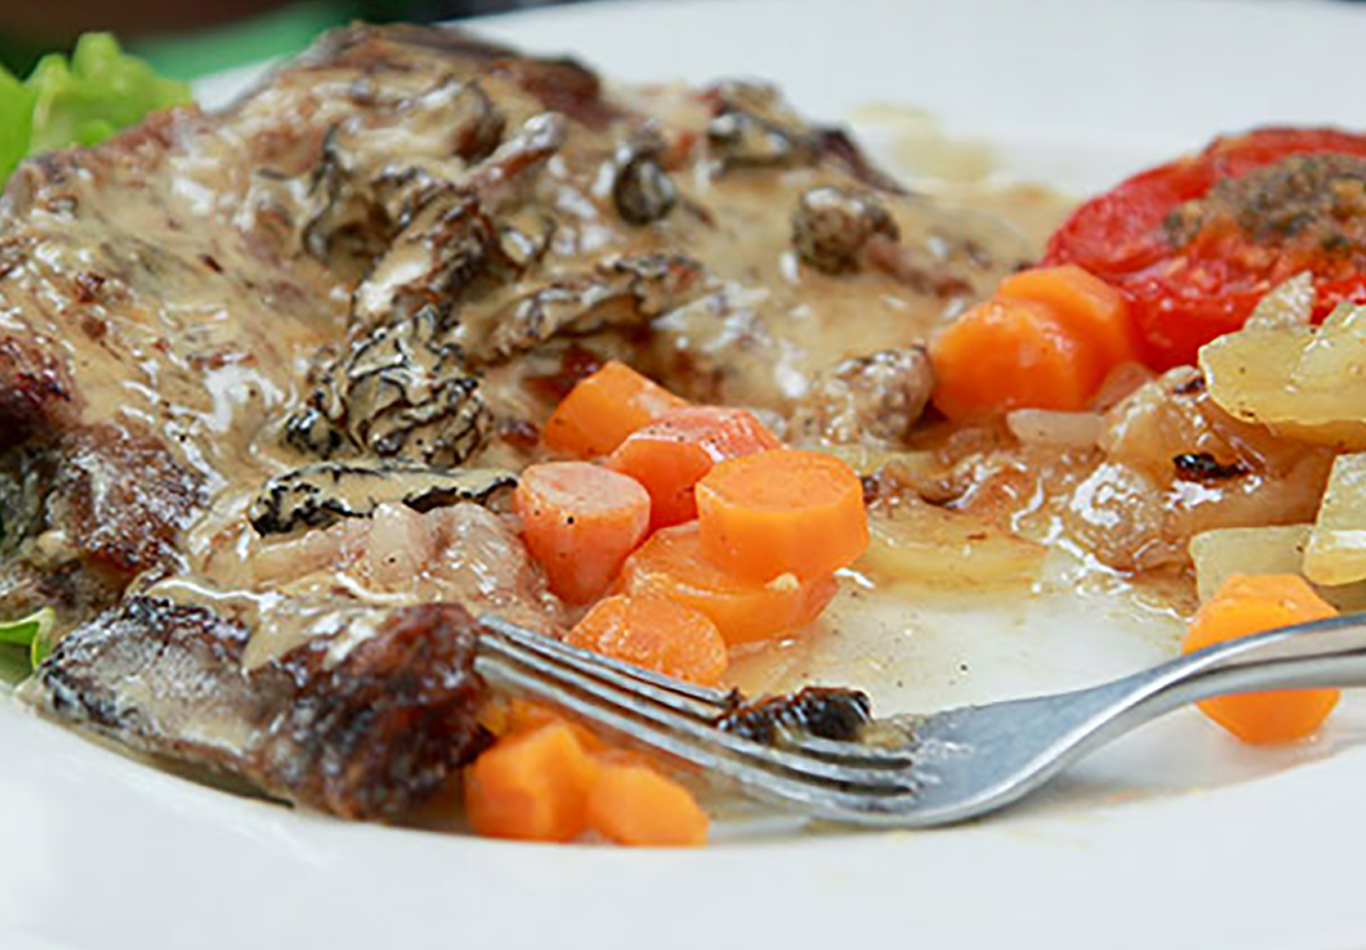 Morel Mushroom Steak Sauce Recipe (Photo courtesy of Raschell Rule)